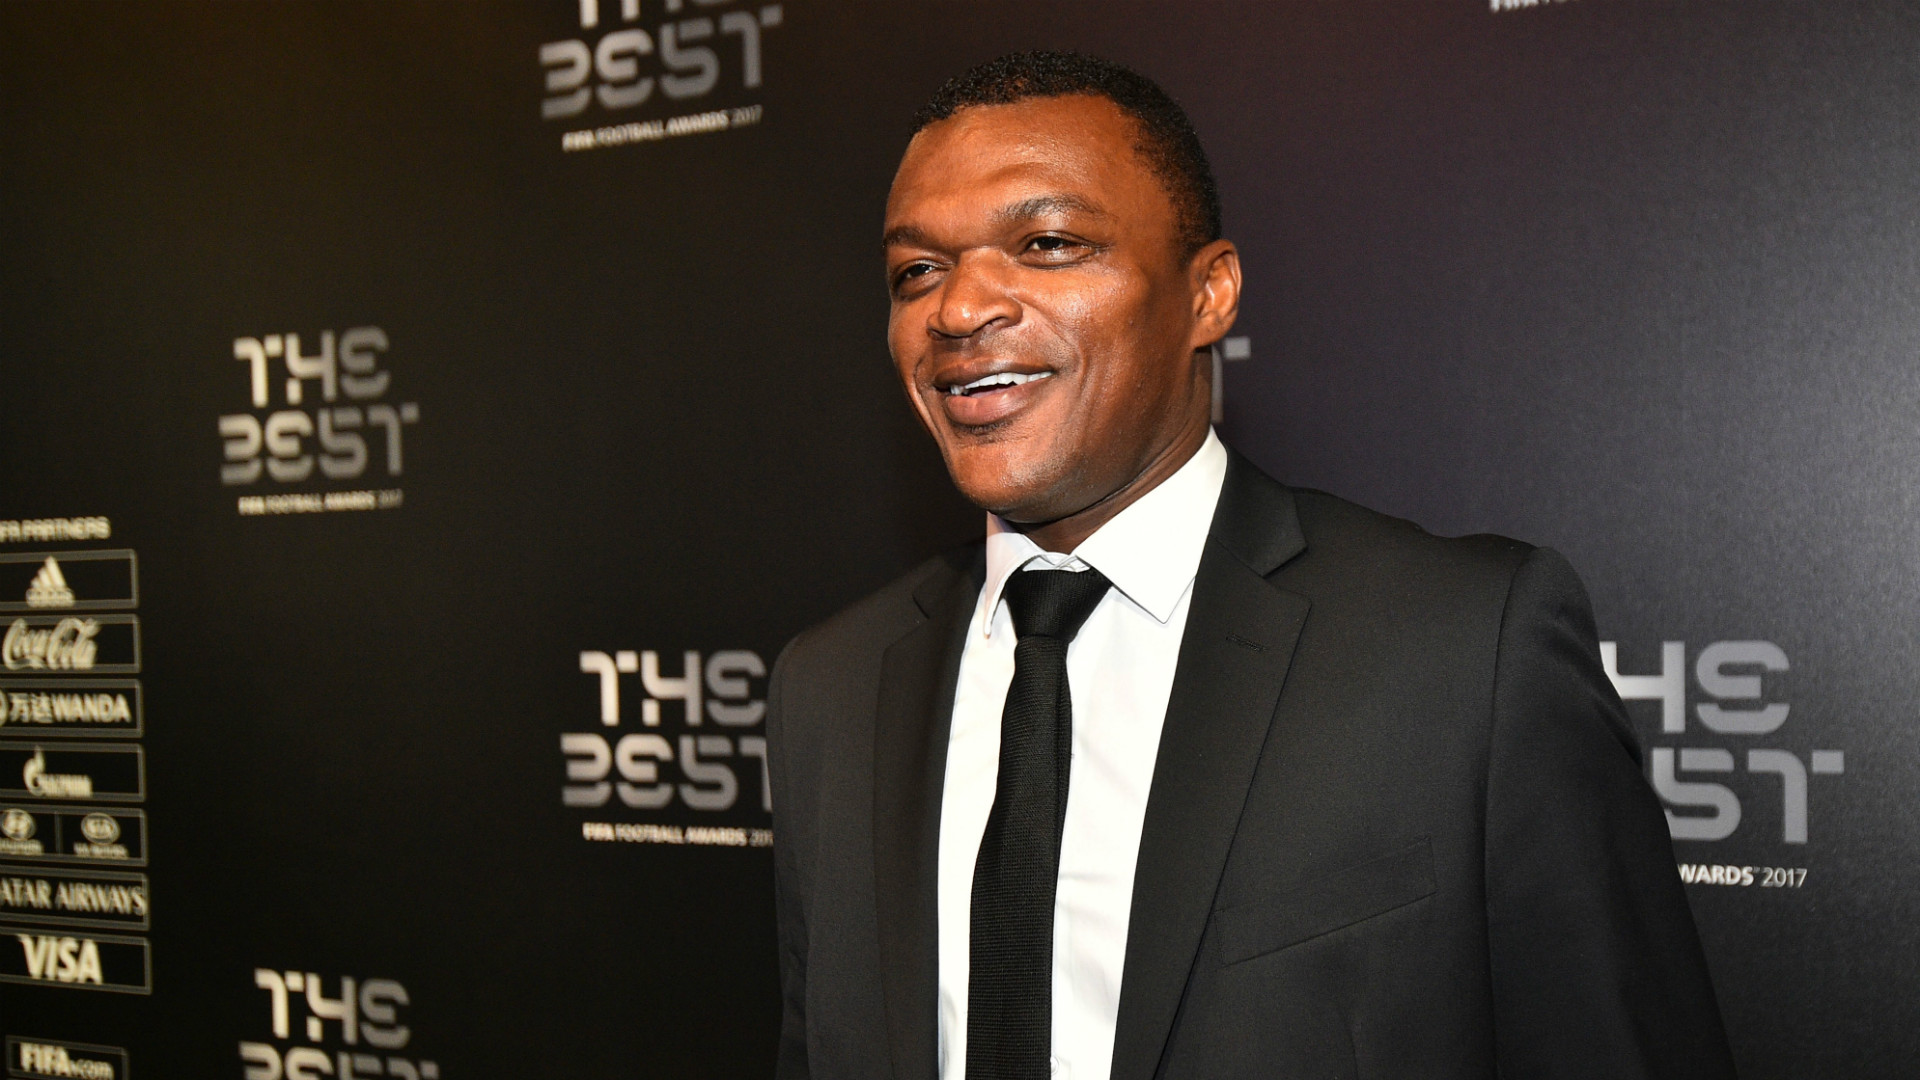 World Cup winner Desailly tips Ghana over South Africa in Qatar 2022 qualifiers